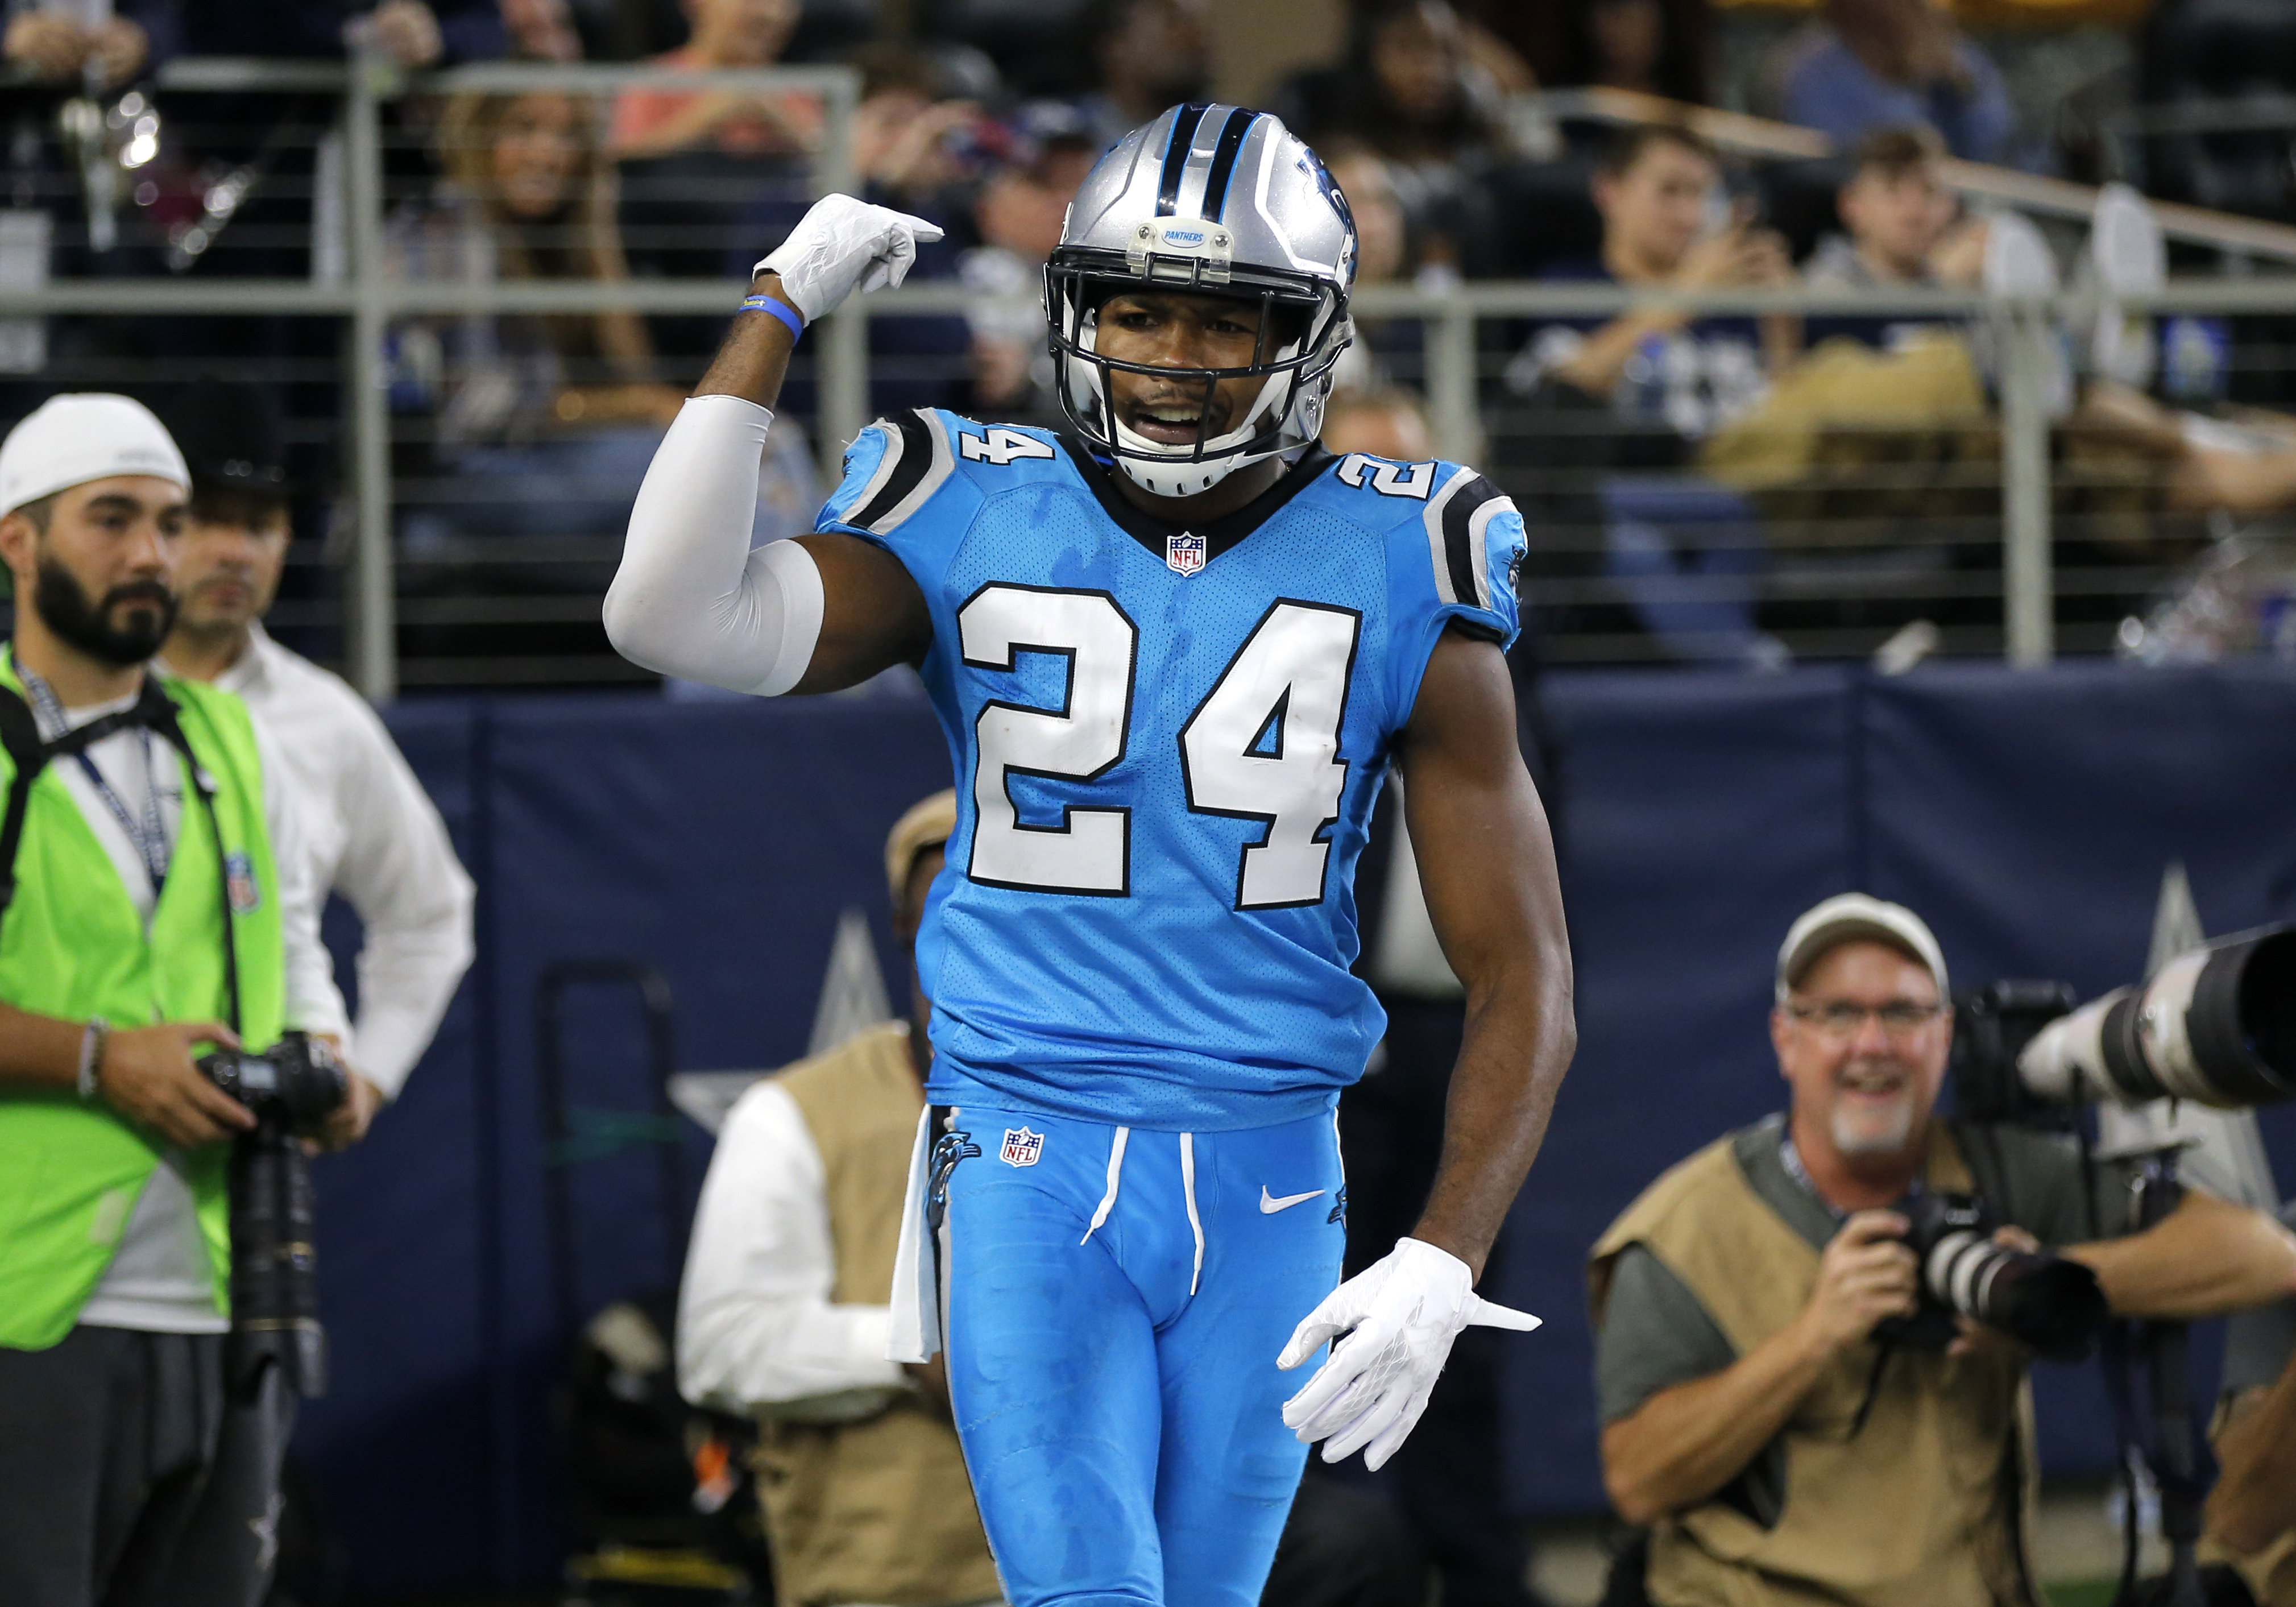 FILE - In this Thursday, Nov. 26, 2015 file photo, Carolina Panthers' Josh Norman gestures in the end zone after breaking up a pass intended for Dallas Cowboys' Dez Bryant during the second half of an NFL football game in Arlington, Texas. Josh Norman, on